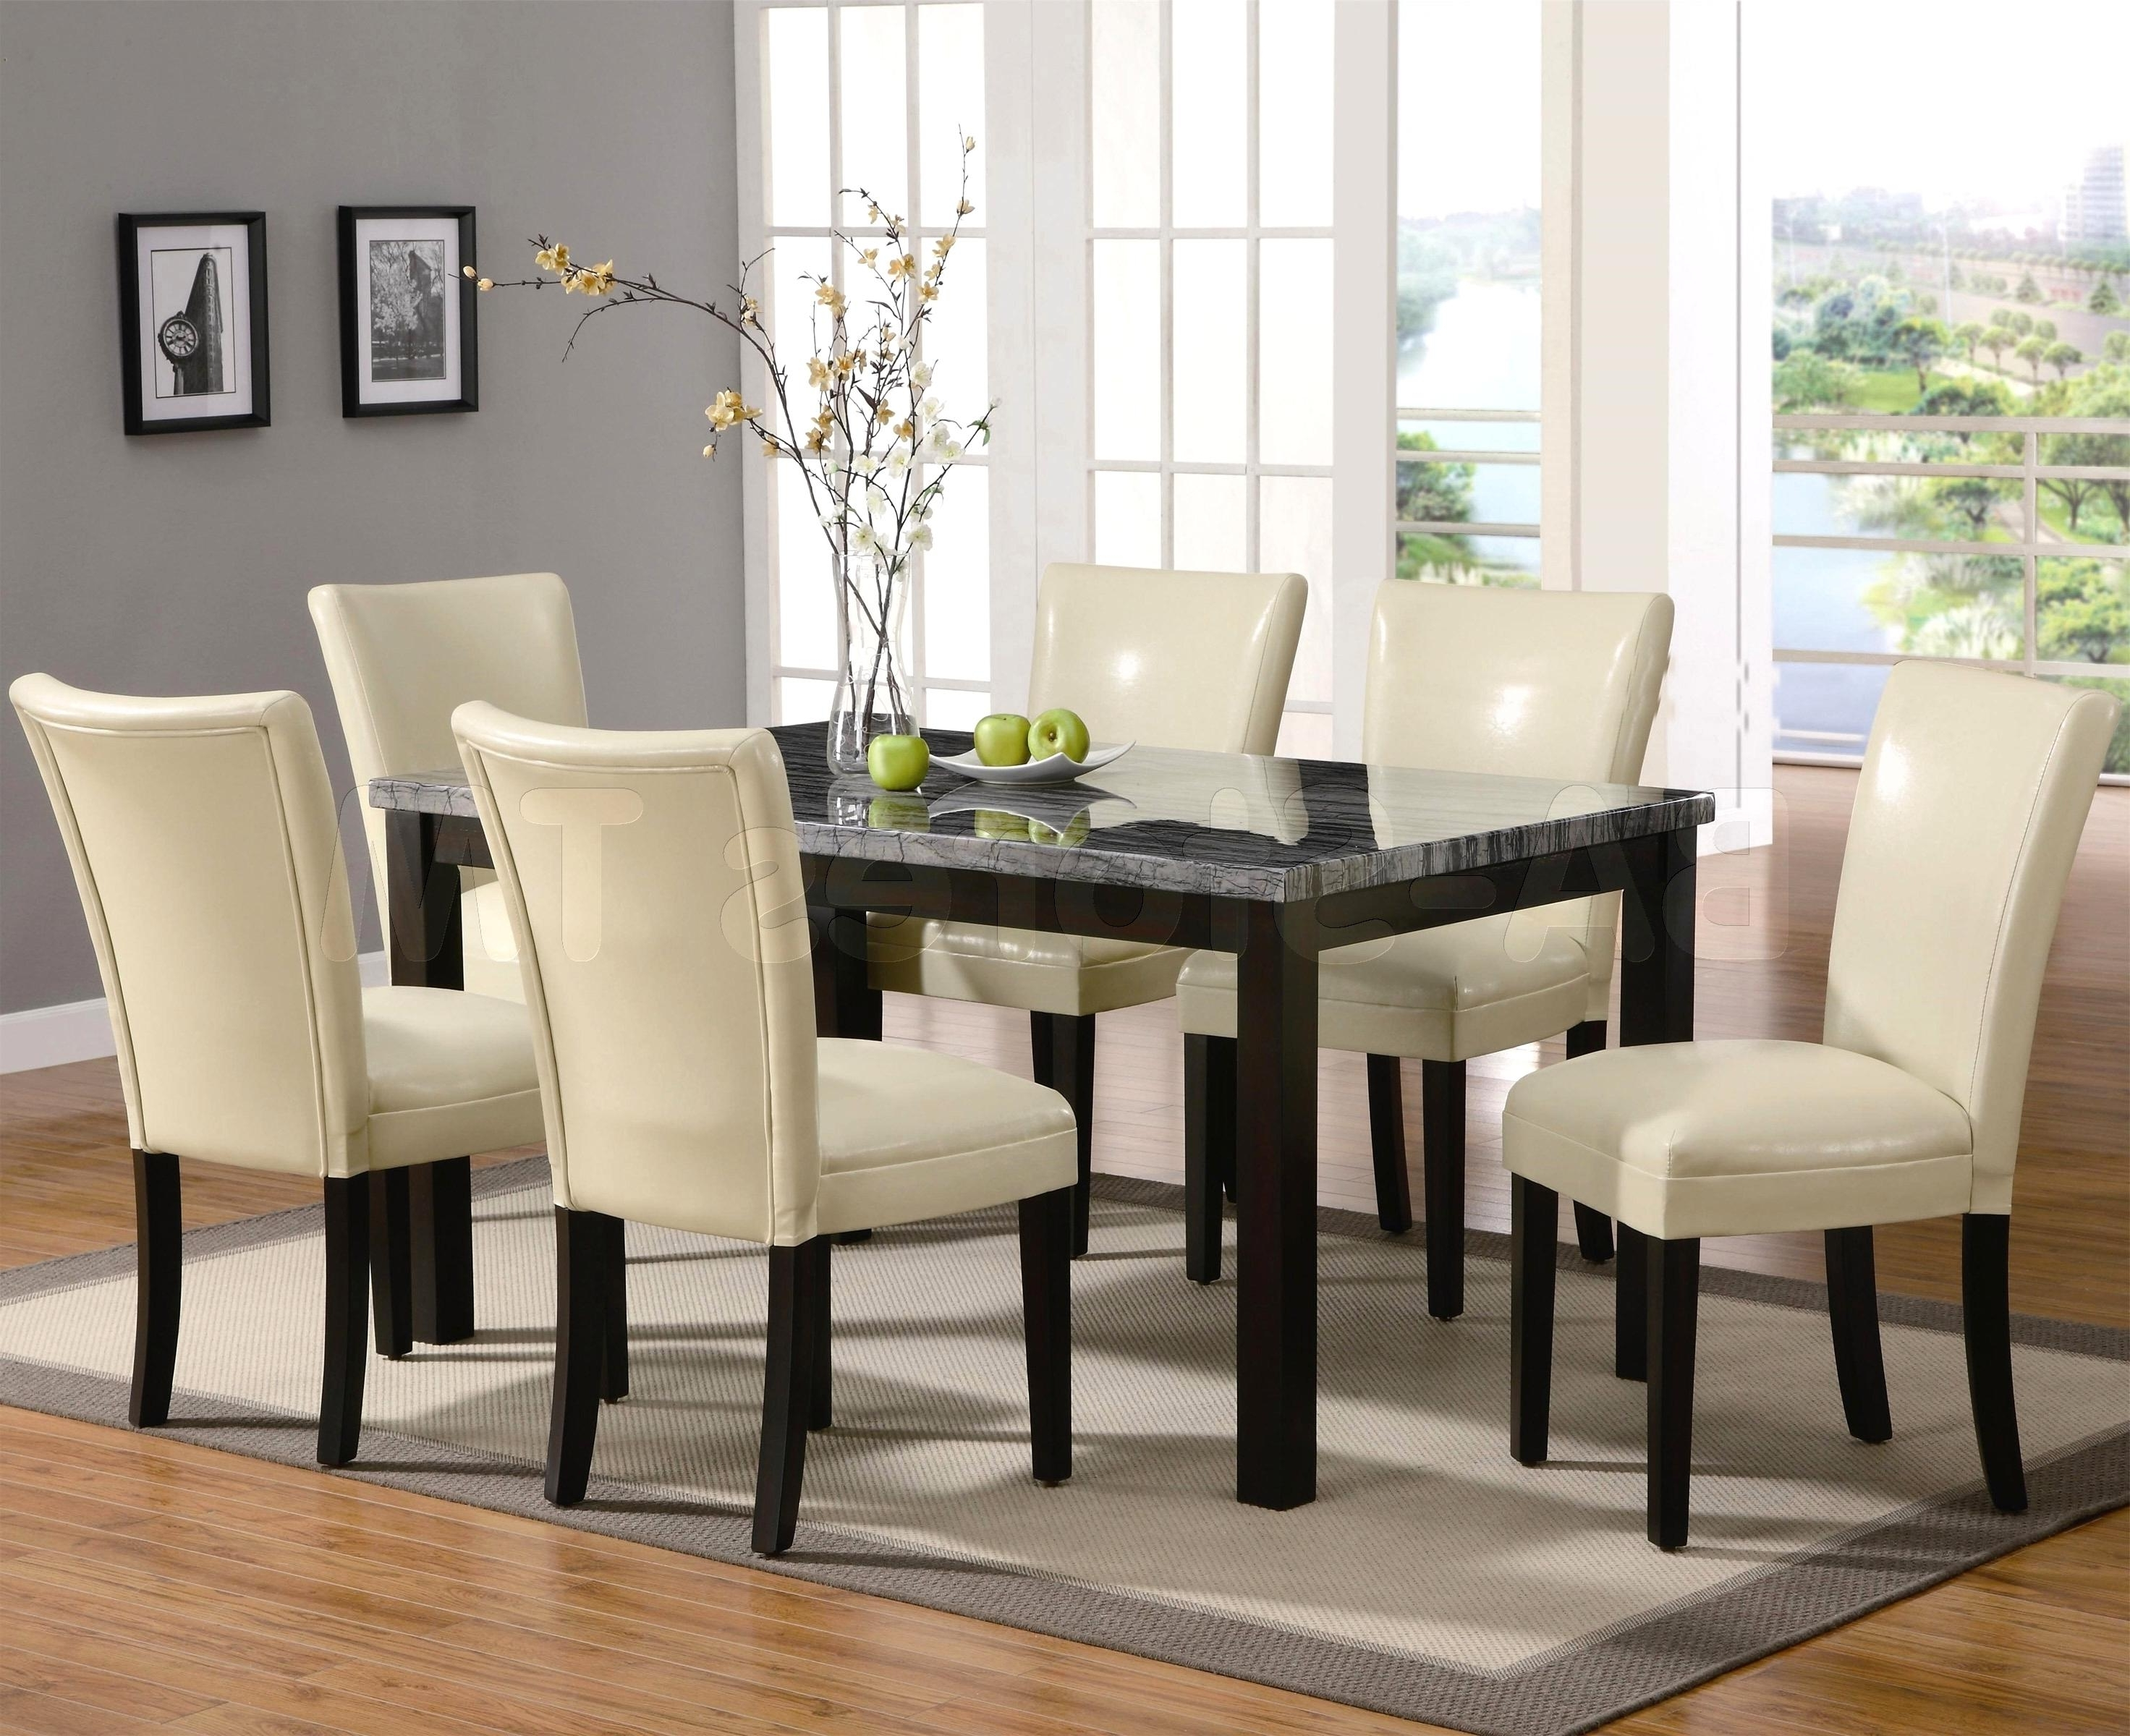 Recent Charming Cream Dining Tables Chairs Luxurius Home Quality Dining Throughout Cream Dining Tables And Chairs (View 18 of 25)